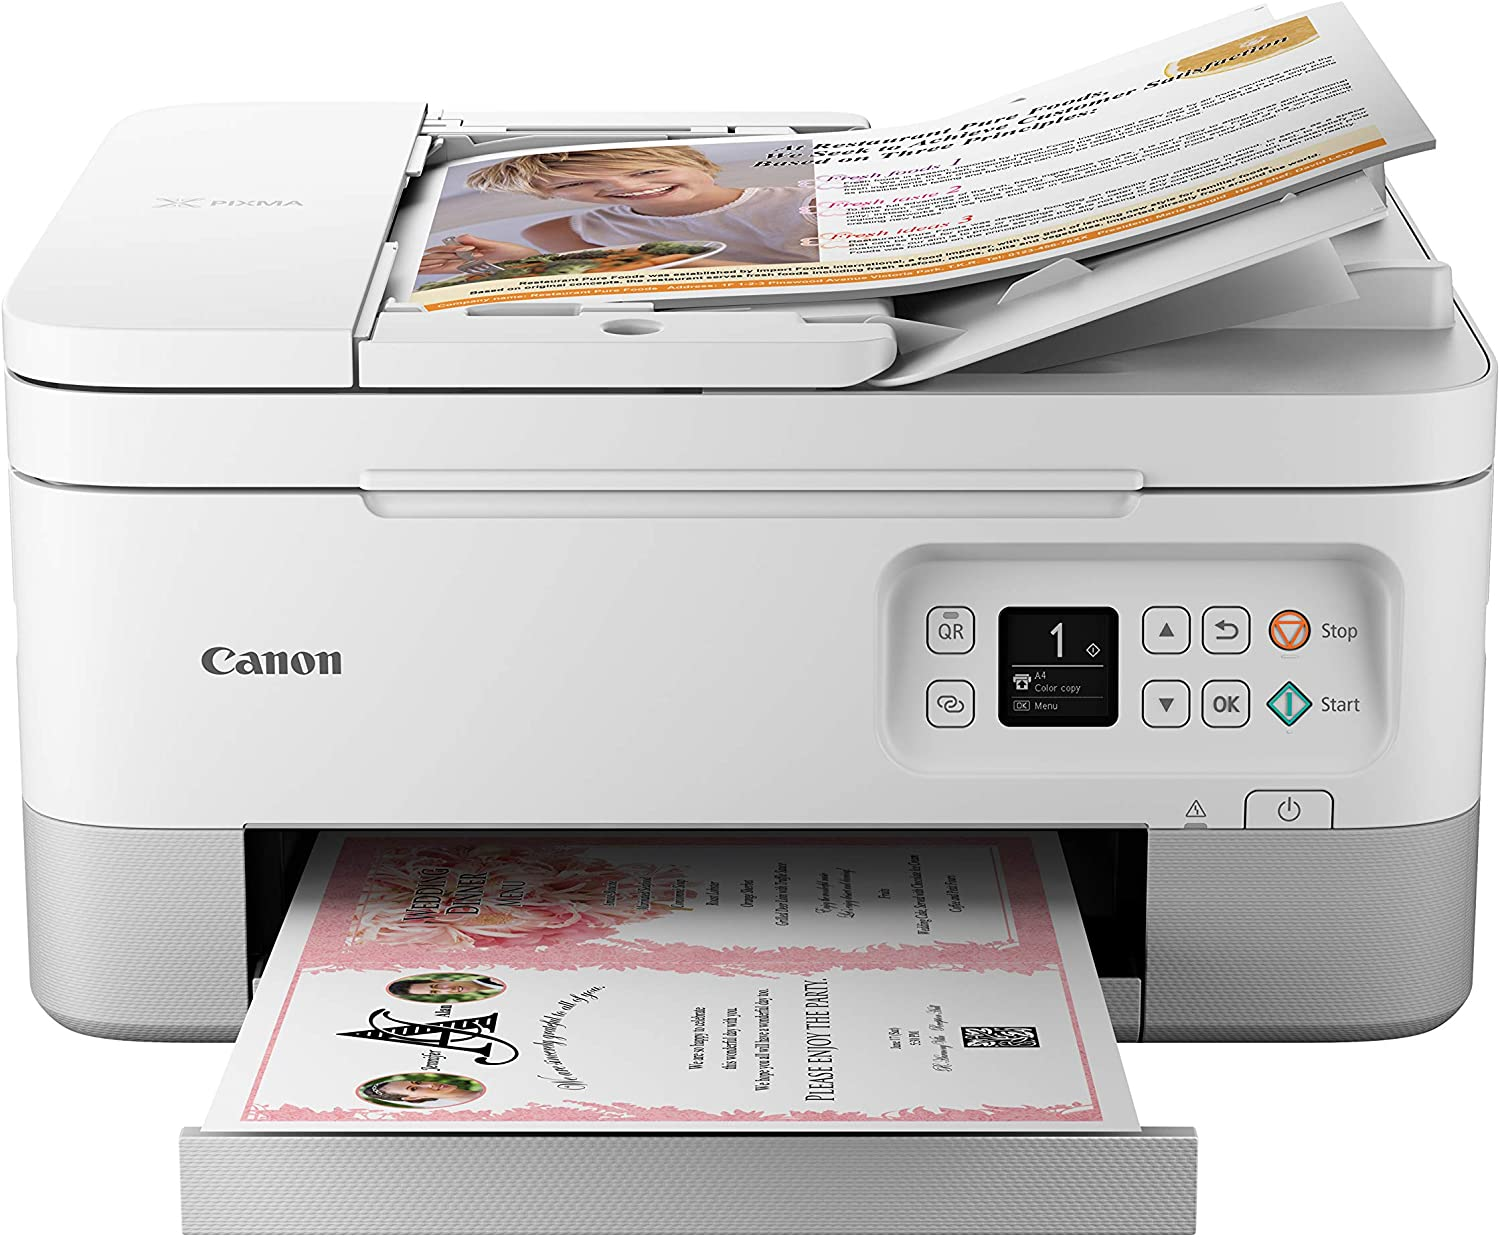 Canon TR7020 All-In-One Wireless Printer For Home Use, White